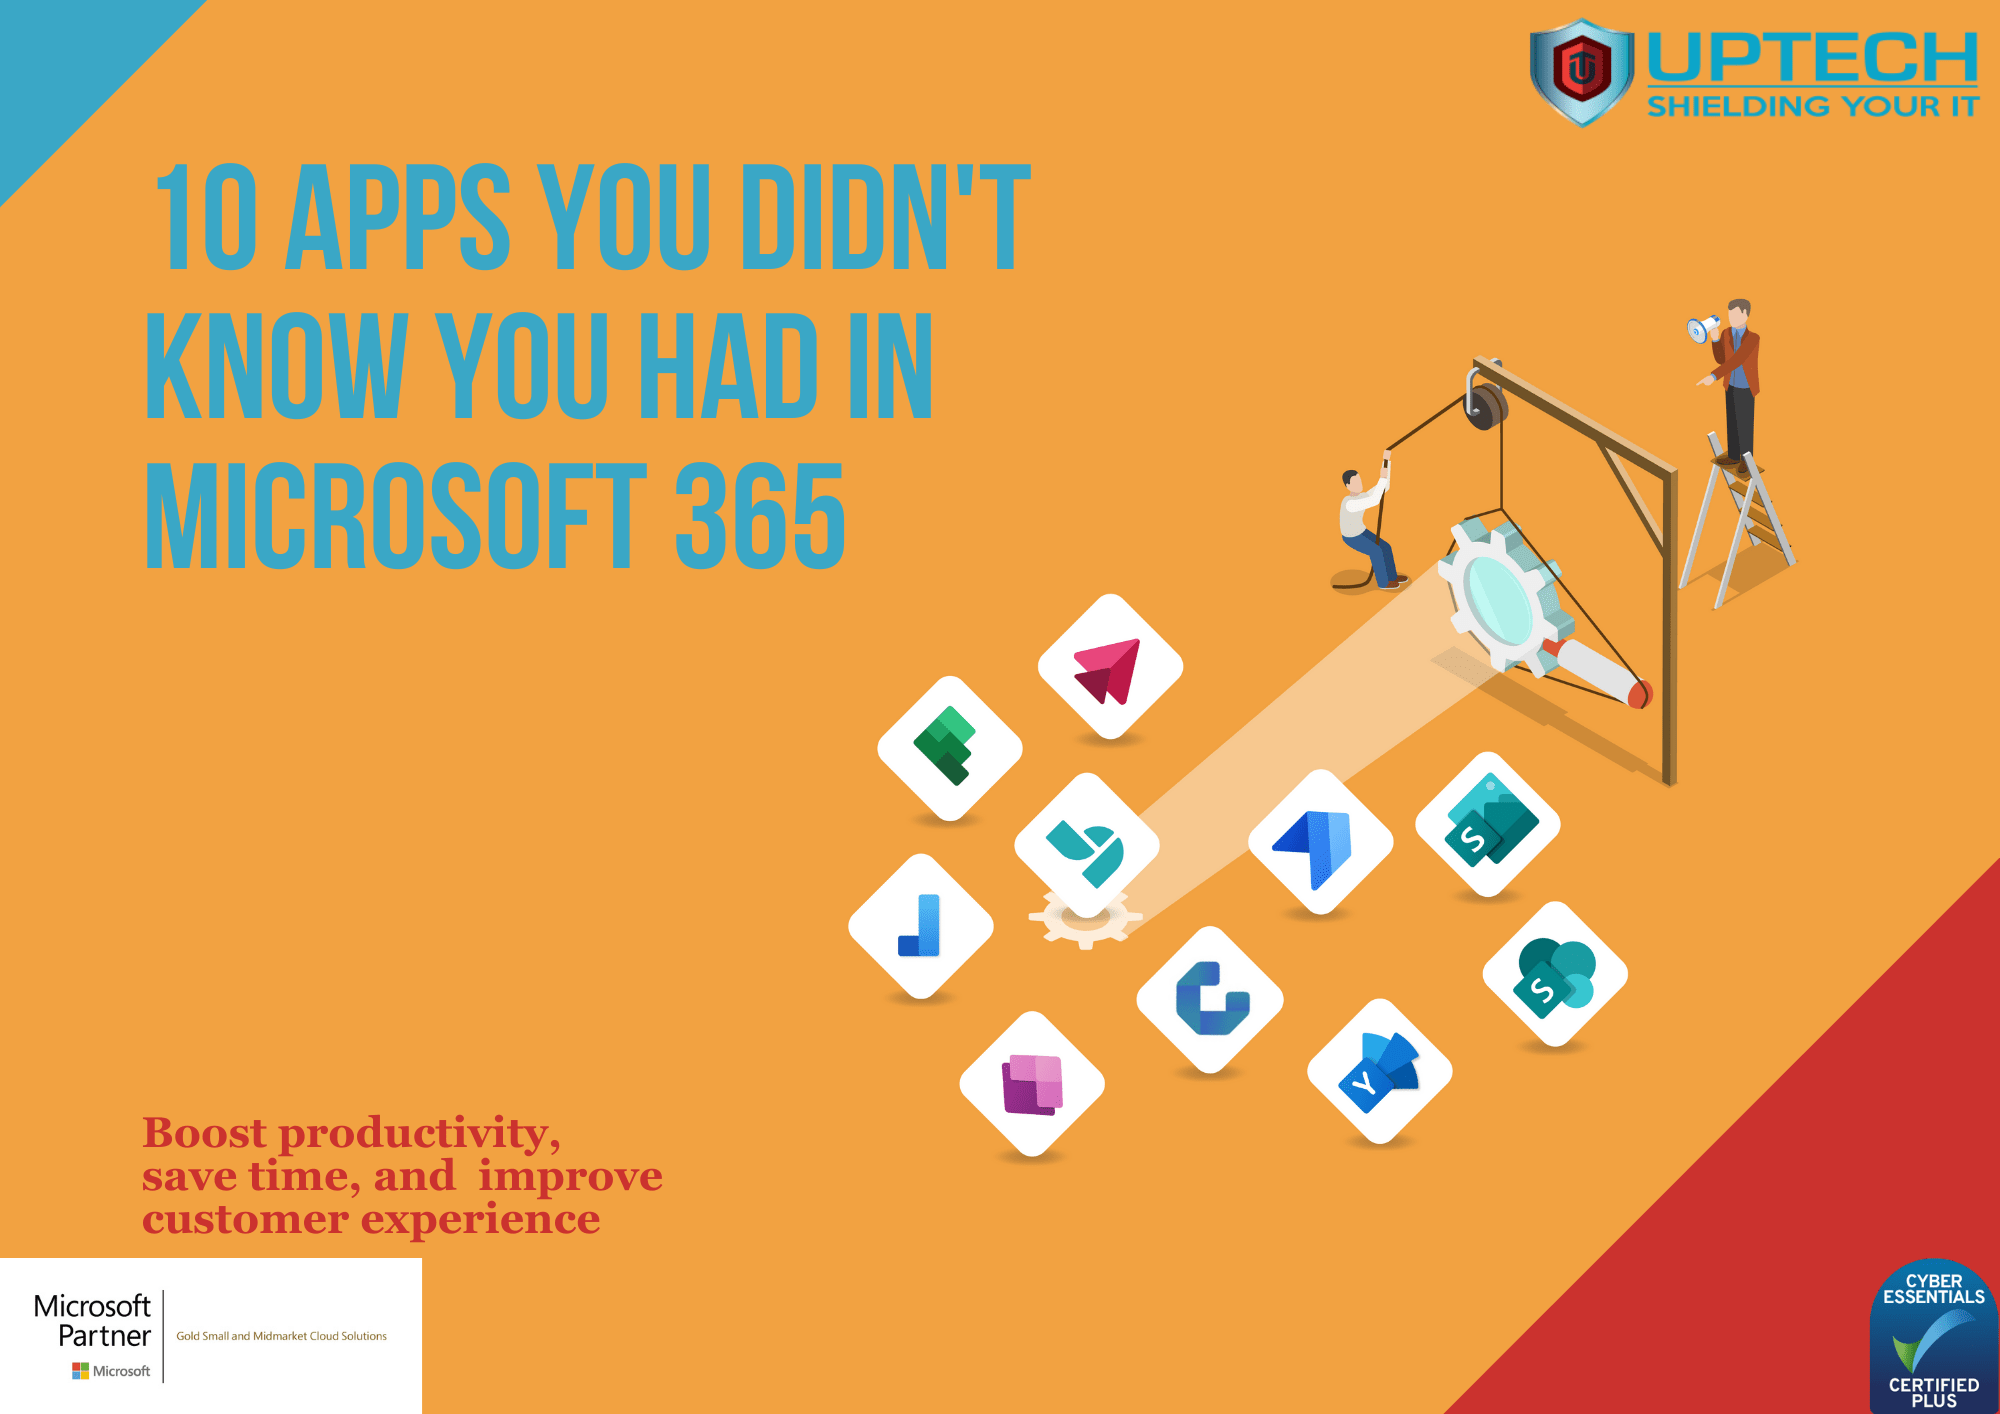 Microsoft Apps, IT Support Outsourced